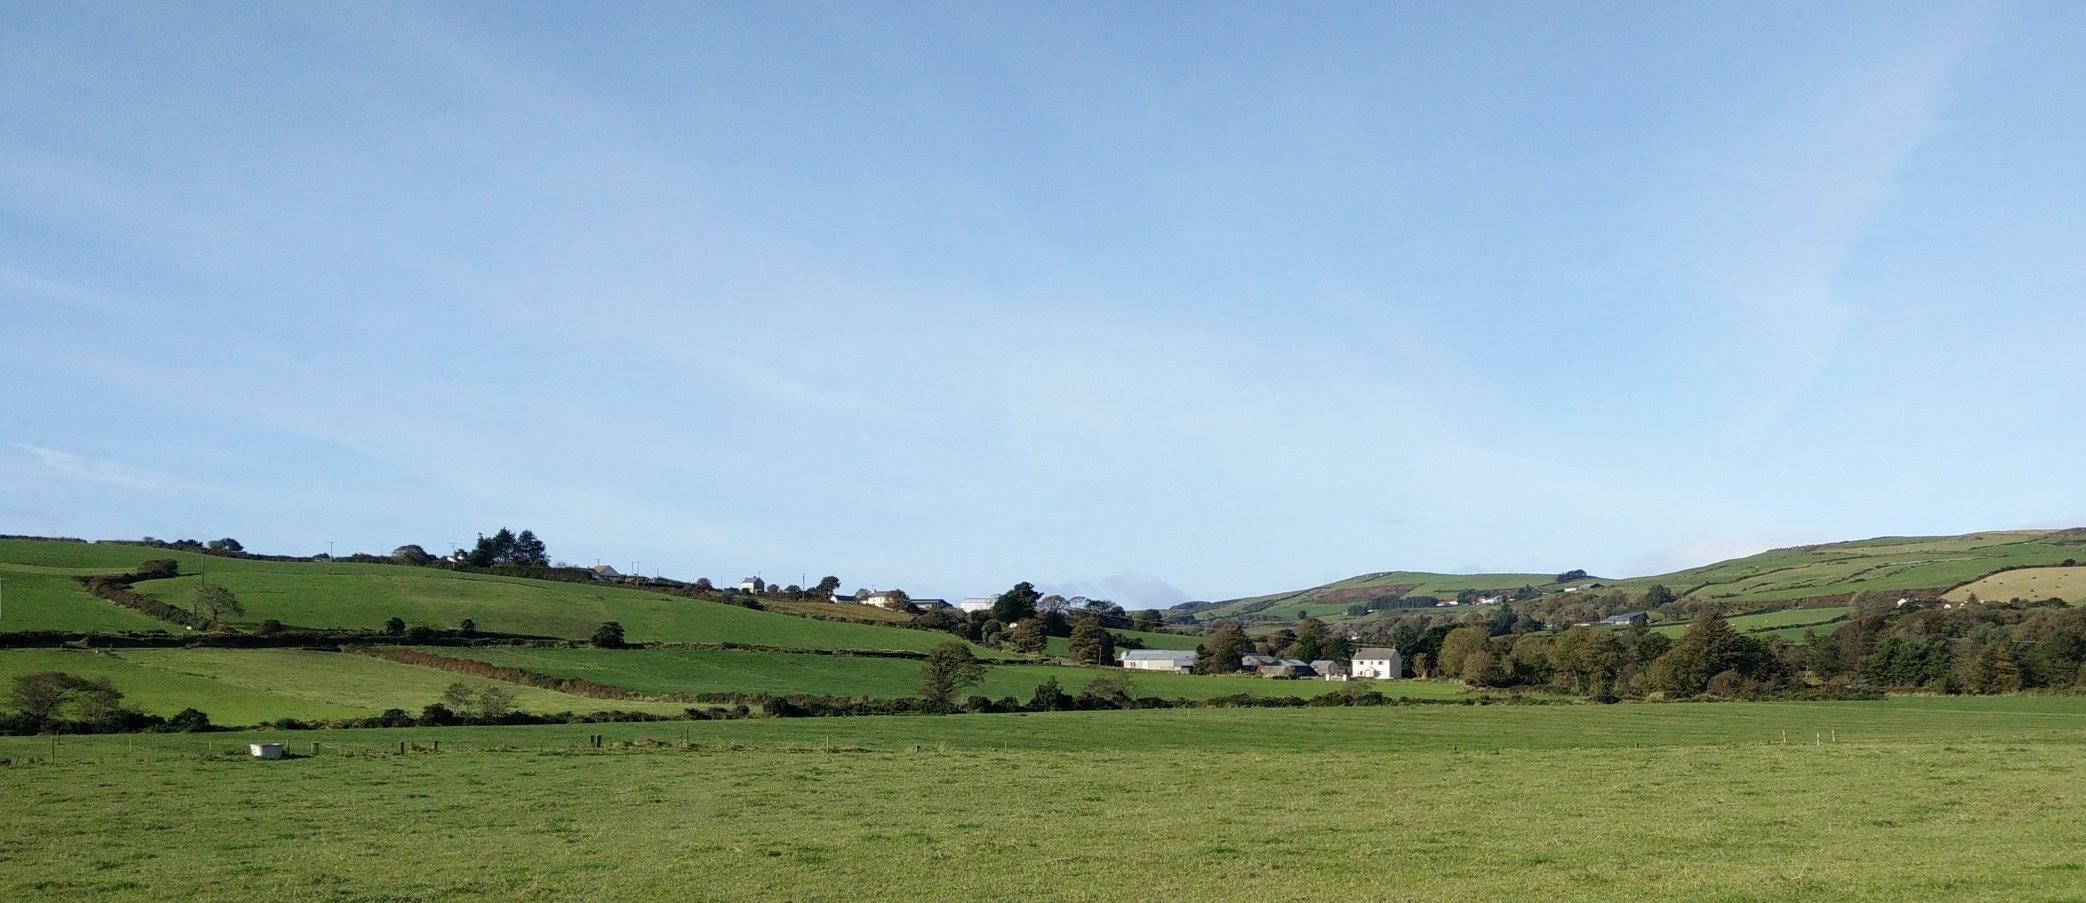 Derryduff, near Rosscarbery, the ancestral townland of the Fitzpatrick's